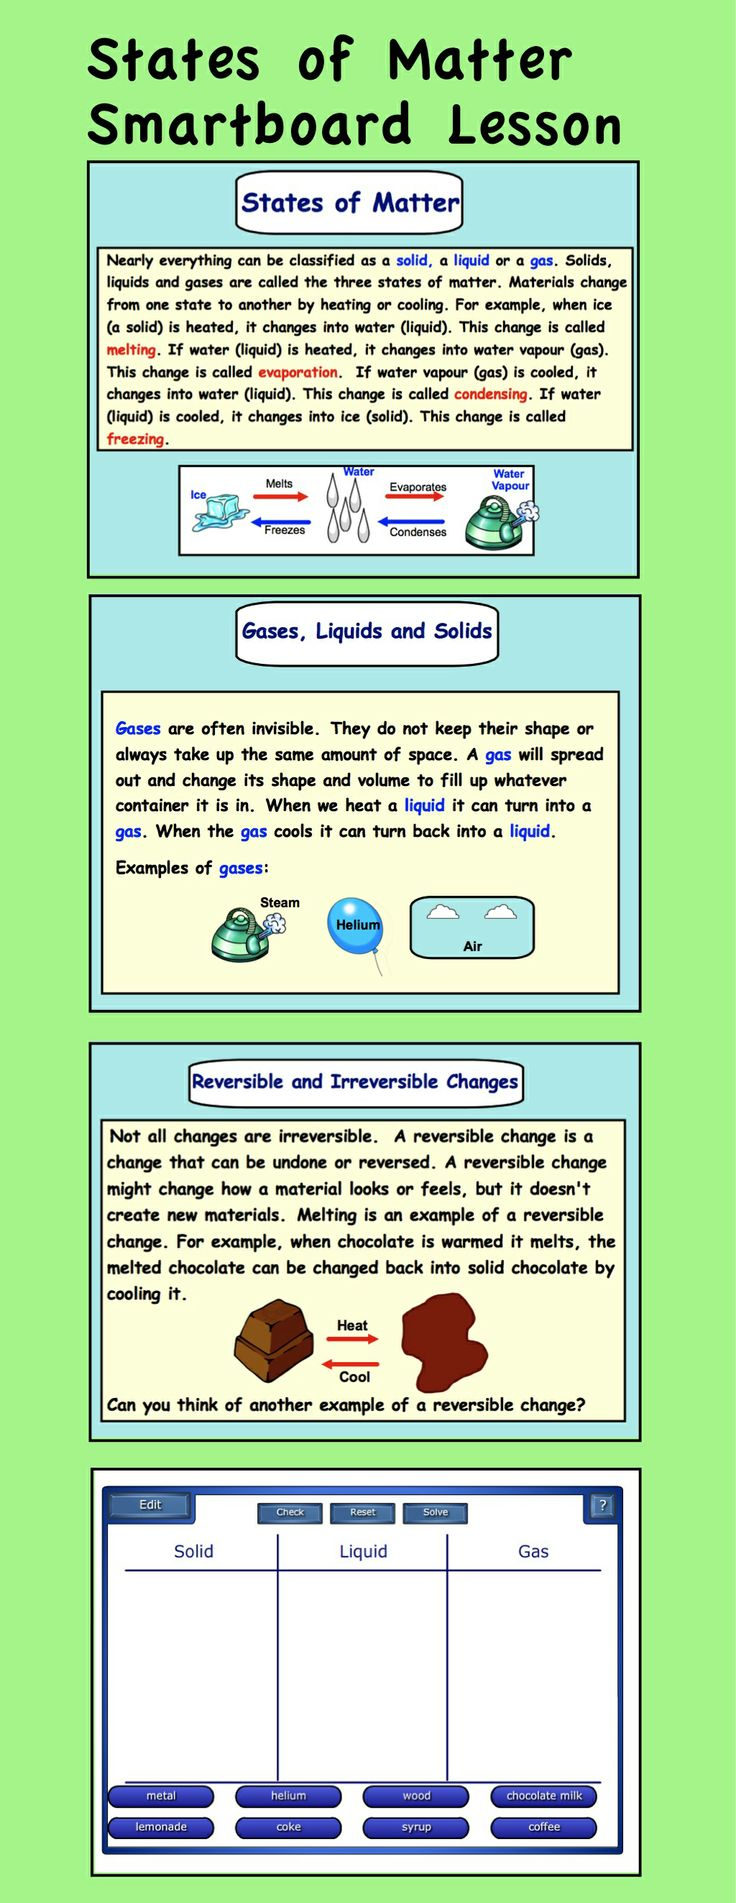 k12the water cycle k12the printable water cycle water matter solids liquids and gases this leads to the water cycle source